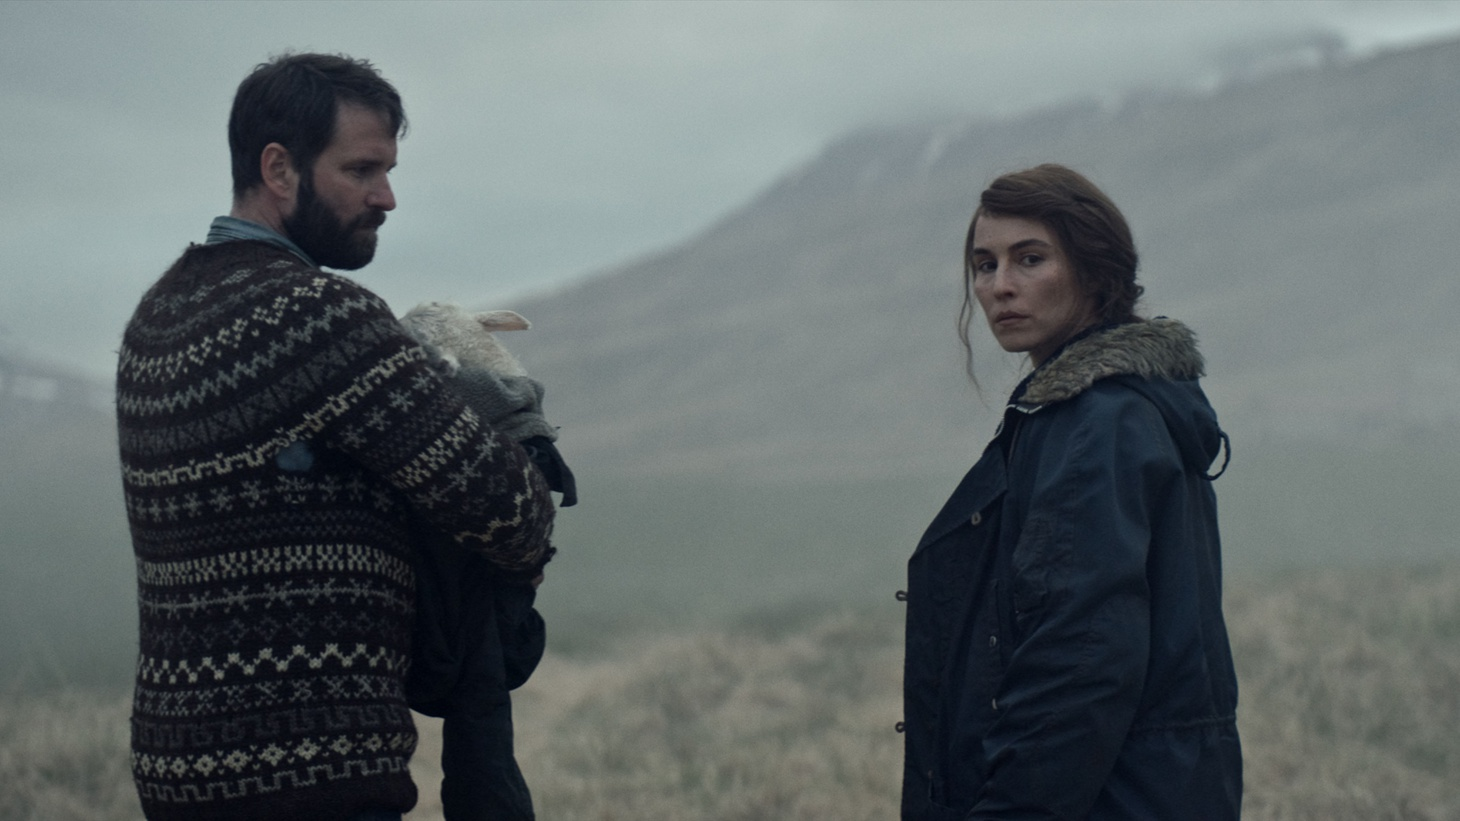 """""""Lamb"""" stars Hilmir Snær Guðnason as Ingvar and Noomi Rapace as Maria — a childless husband and wife who raise a mysterious lamb as their own child."""